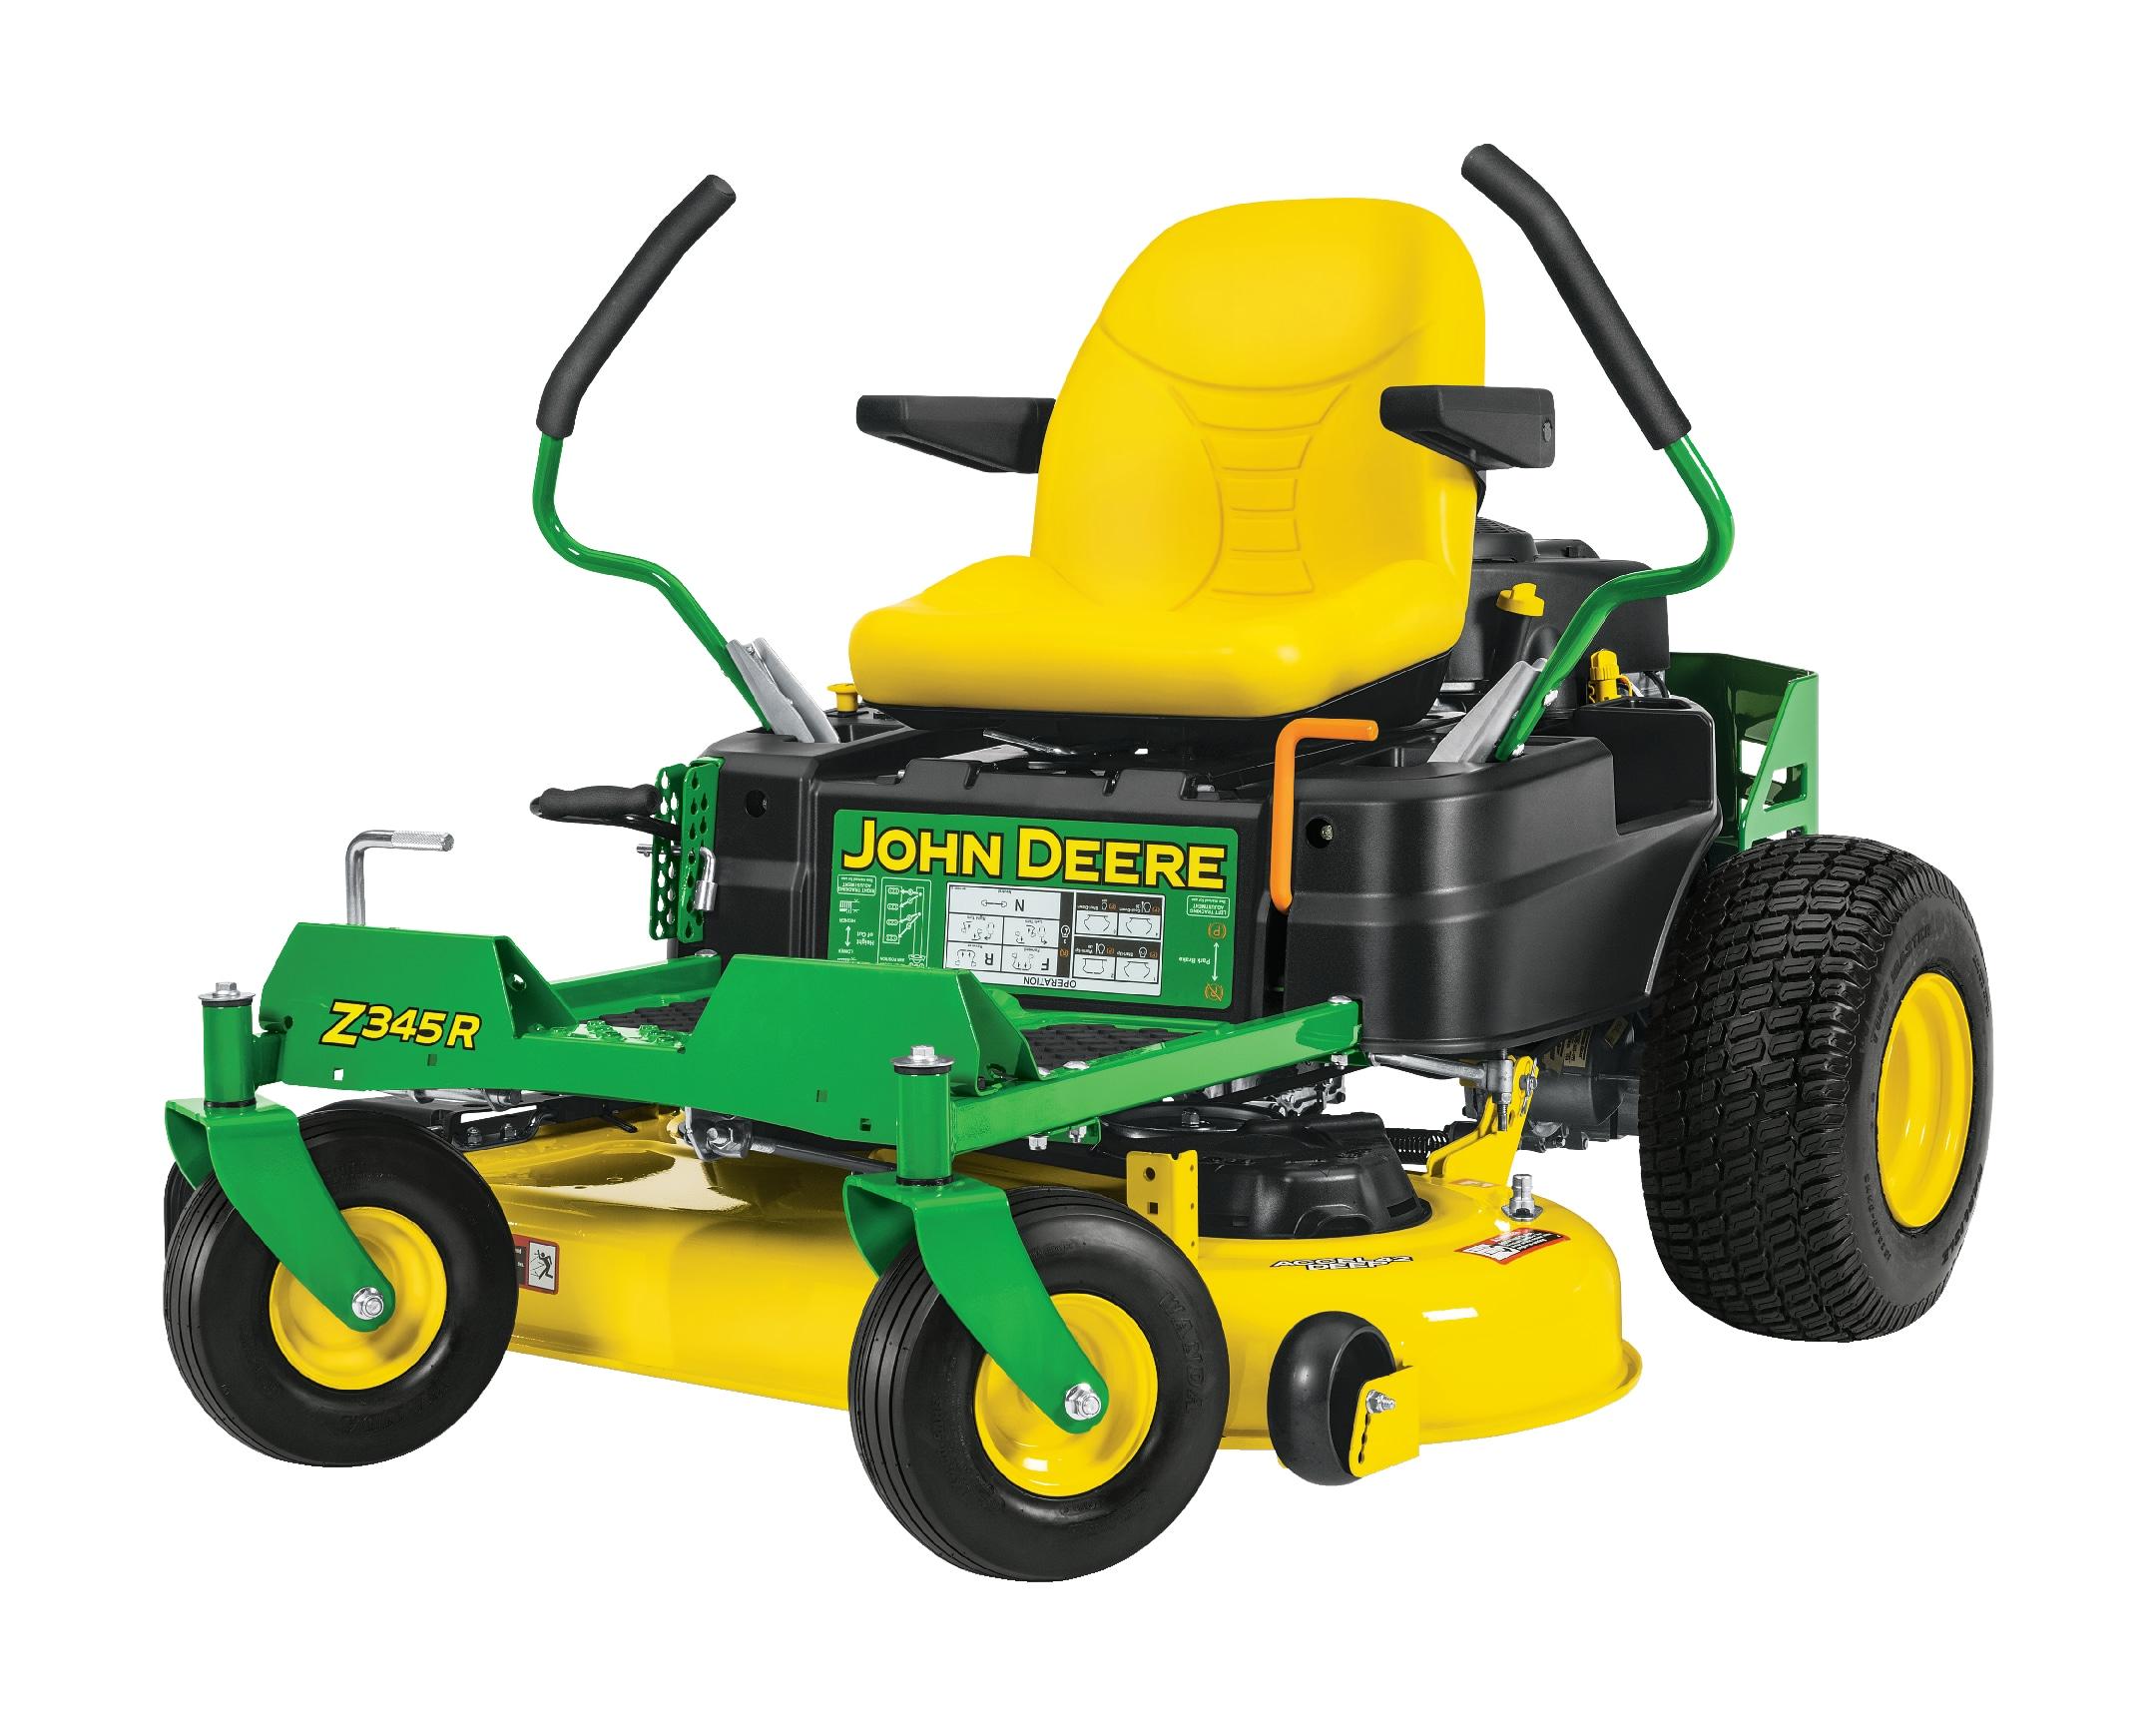 Studio image of a Z345R residential ZTrak mower